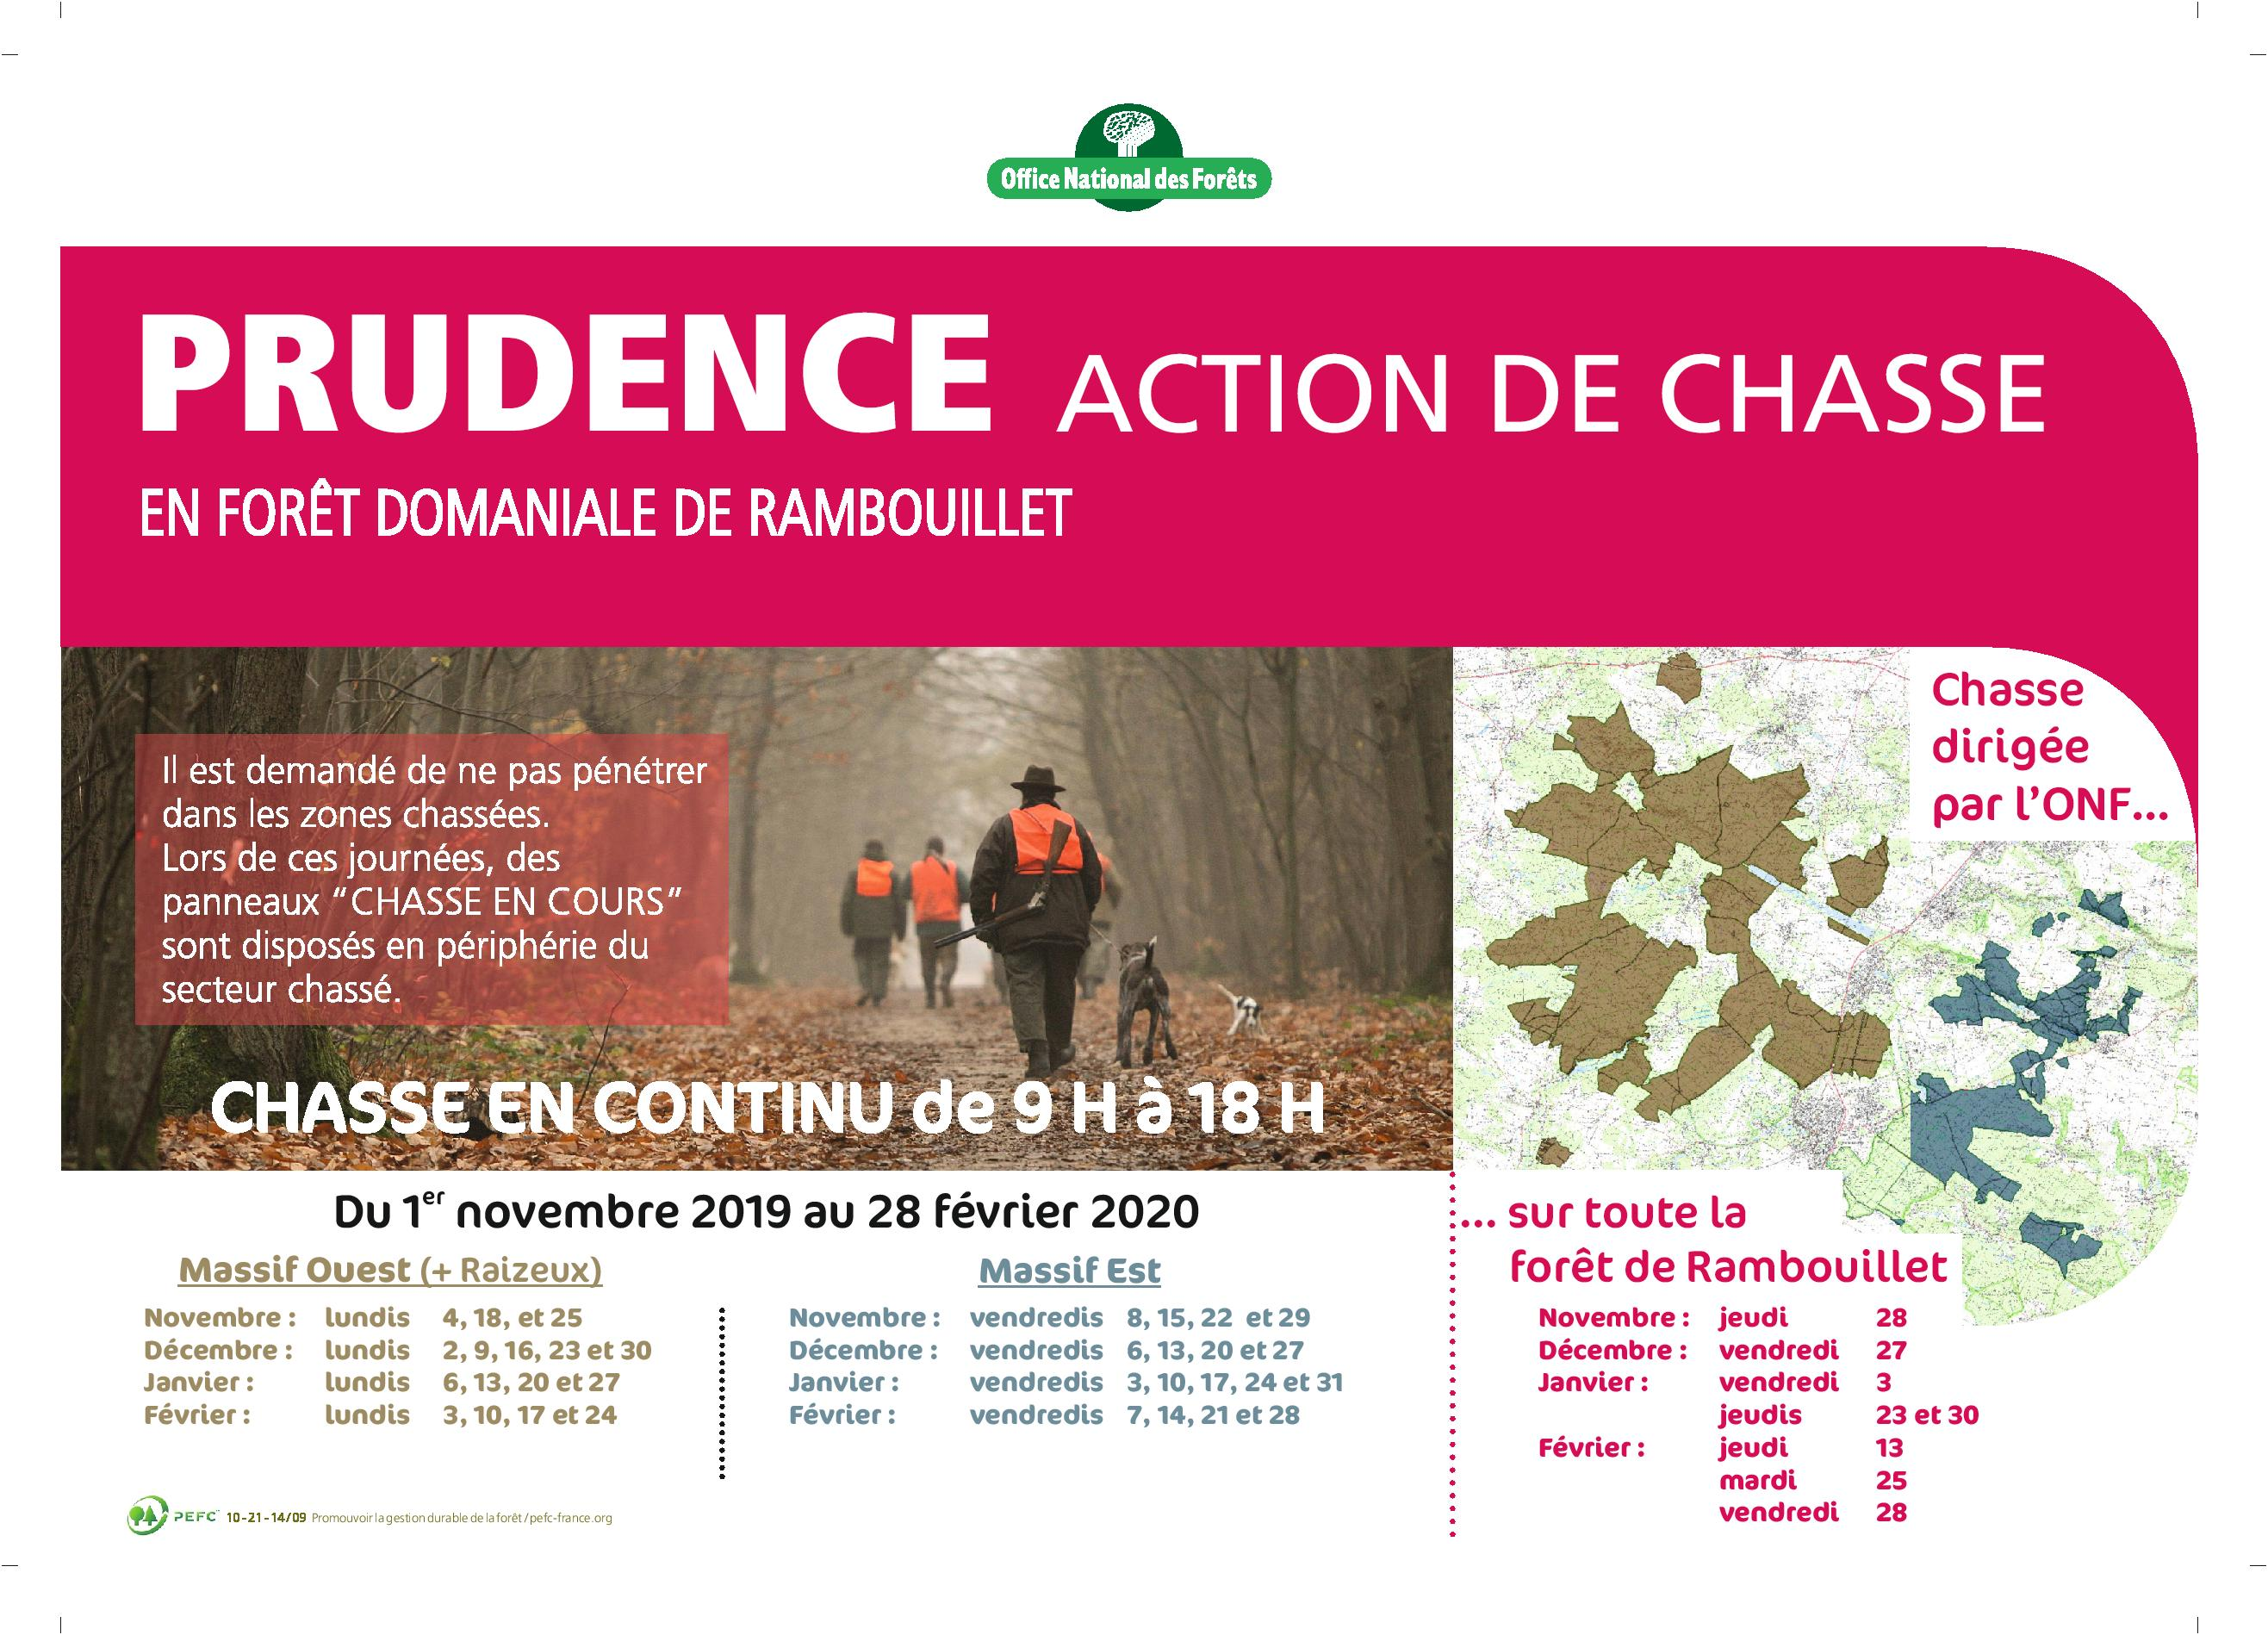 chasse 2019 2020 Rambouillet